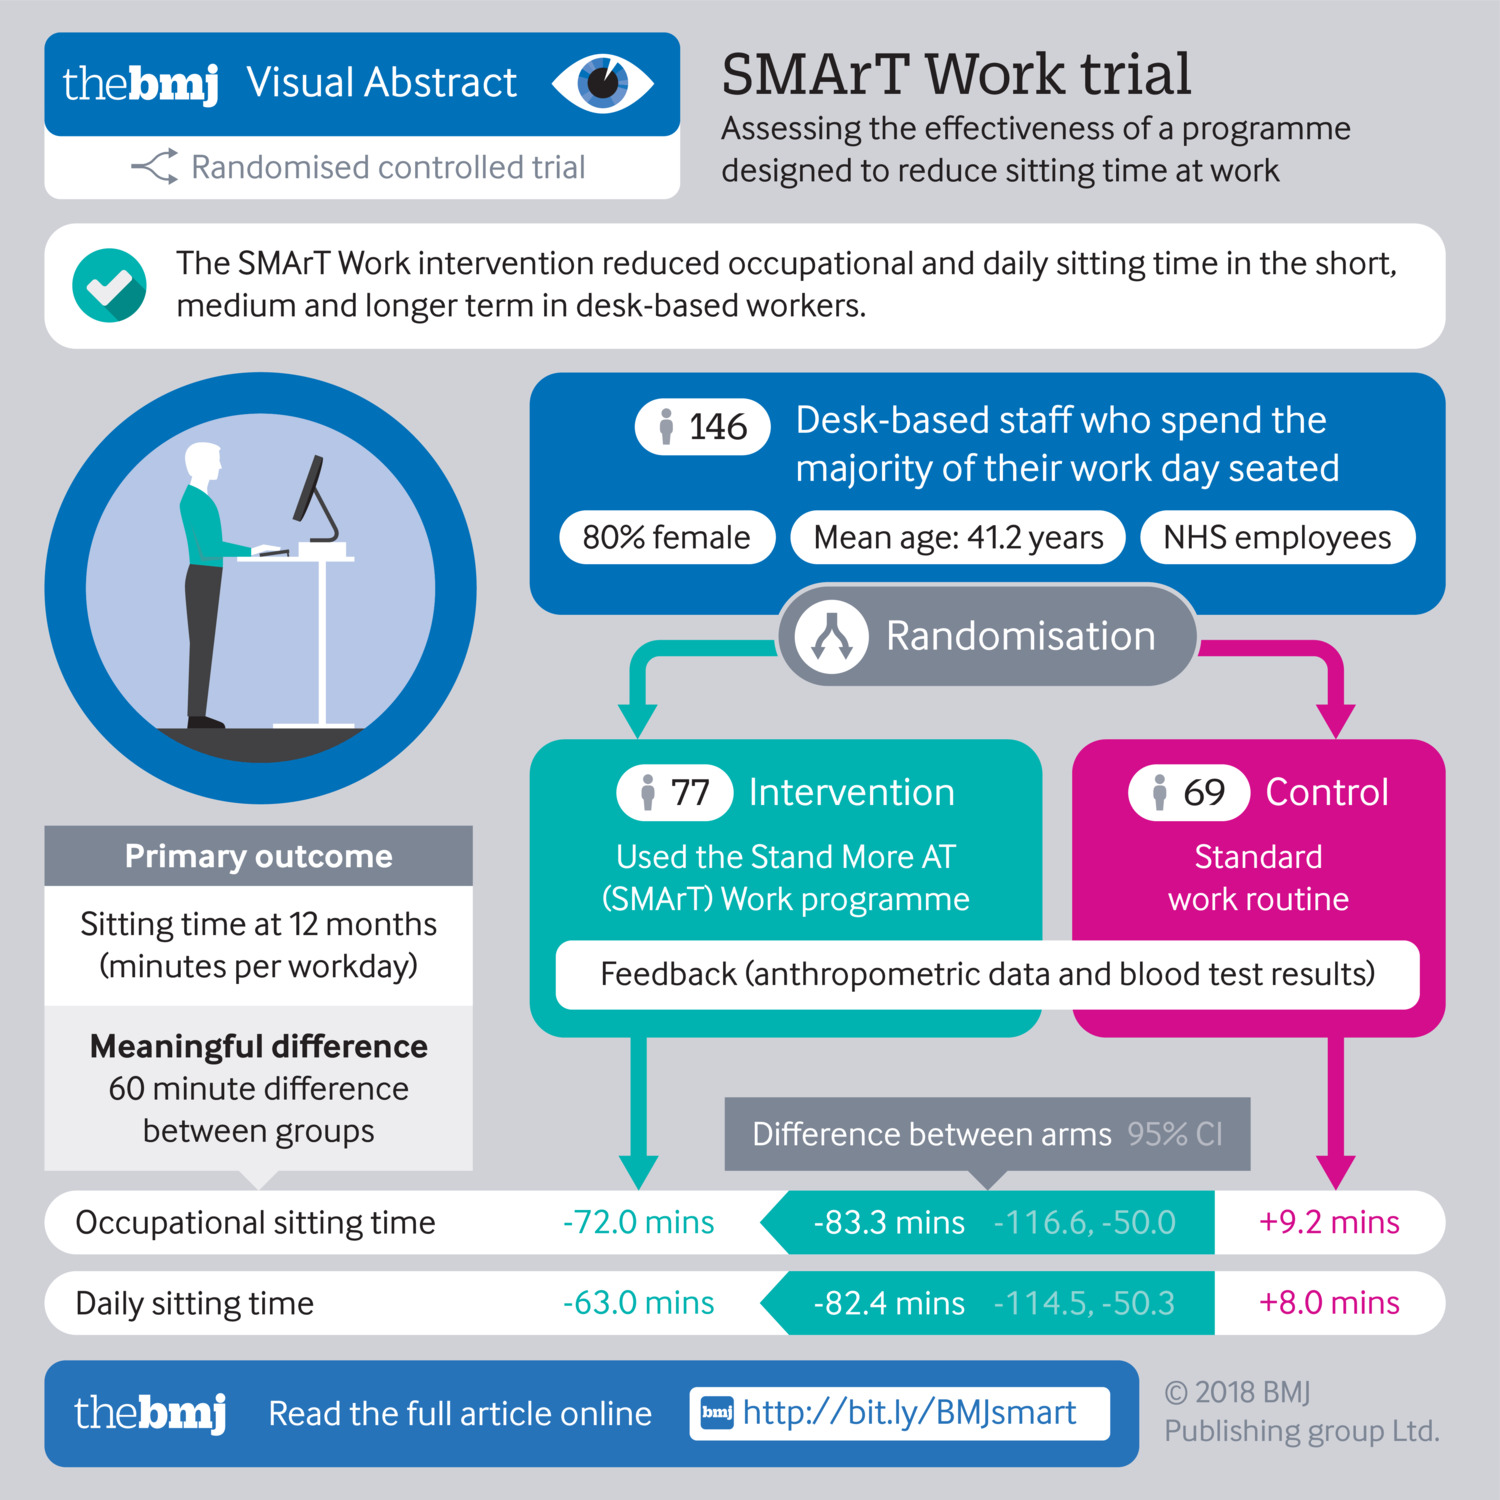 Effectiveness of the Stand More AT (SMArT) Work intervention